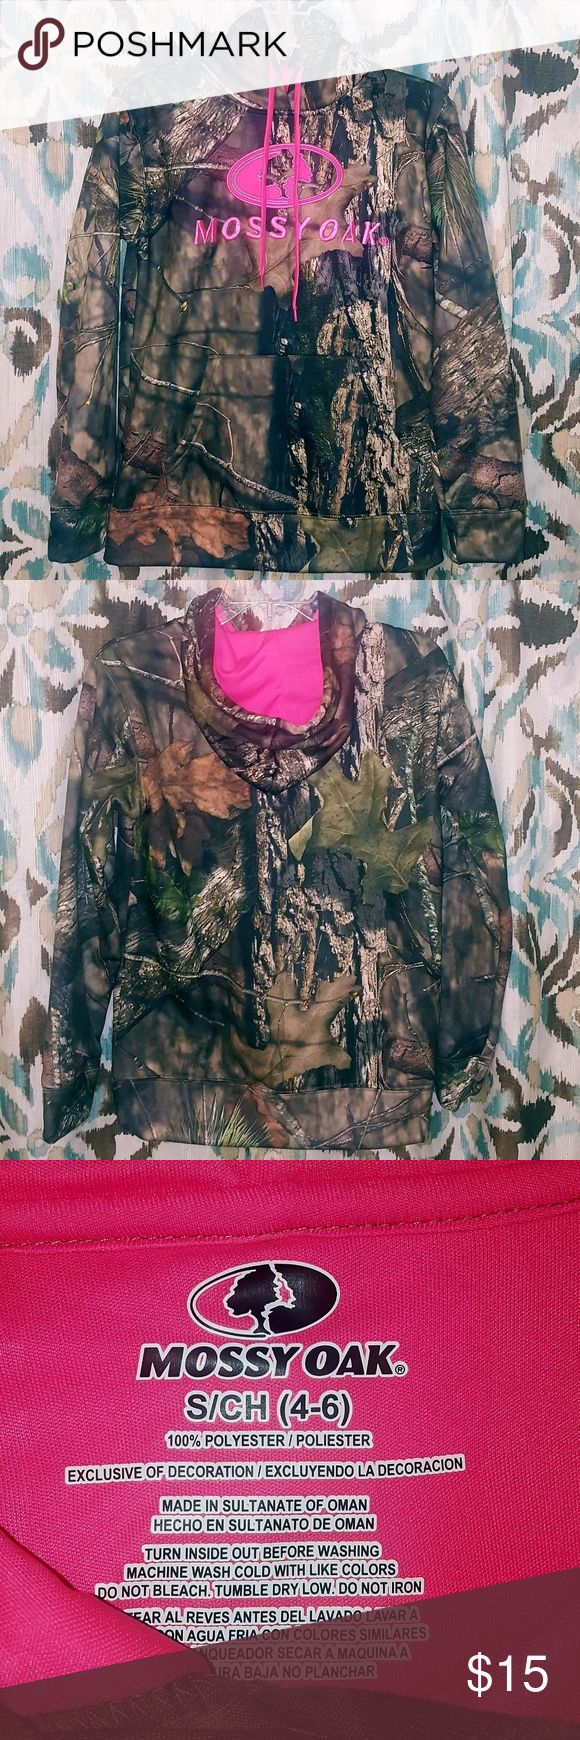 BNWT!! LADIE'S CAMO MOSSY OAK HOODIE - SMALL BNWT!   CREATE YOUR BUNDLE & SAVE!! PICK 3 OR MORE ITEMS FROM MY CLOSET & SAVE, SAVE, SAVE!!!  I USUALLY SHIP WITHIN 24 HOURS. EXCEPT WEEKEND ORDERS WILL BE SHIPPED ON MONDAY!!   PLEASE NOTE: I WILL ALWAYS NOTIFY YOU WHEN YOUR ITEM(S) HAVE BEEN SHIPPED WITH A PICTURE OF THE SHIPPING CONFIRMATION.  THANKS FOR LOOKING! AM7X70 MOSSY OAK Tops Sweatshirts & Hoodies